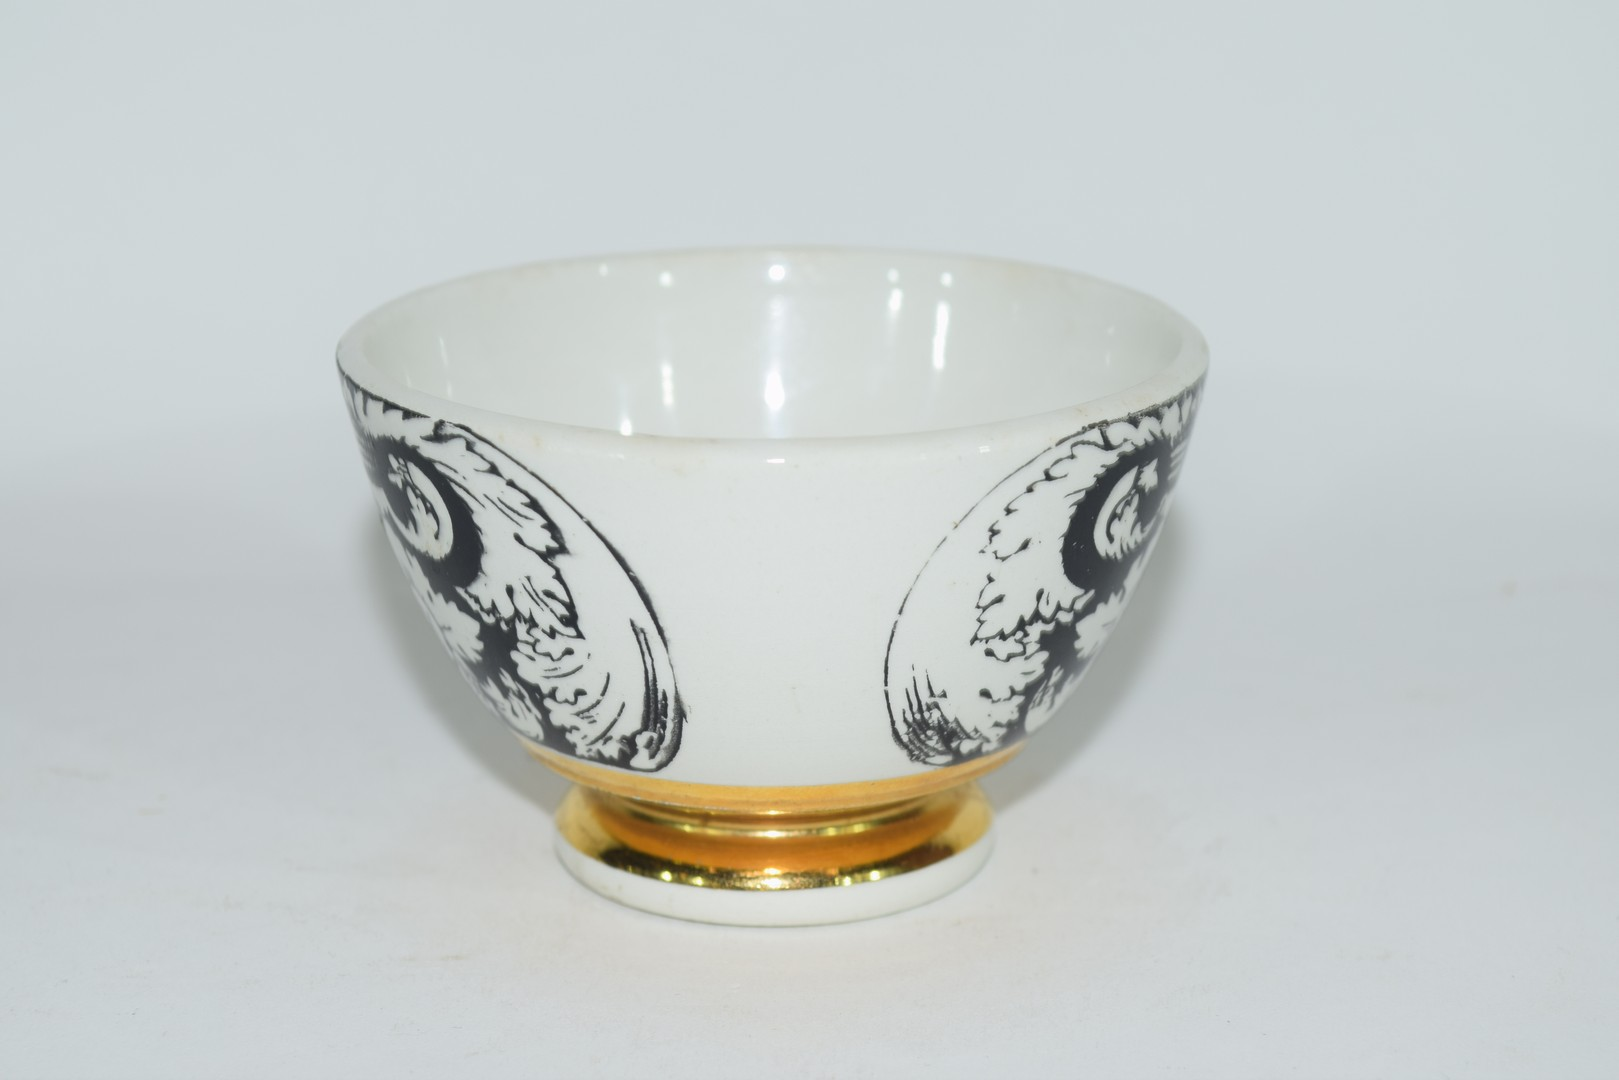 Small bowl decorated in black and white with a design by Fornisetti, - Image 2 of 5